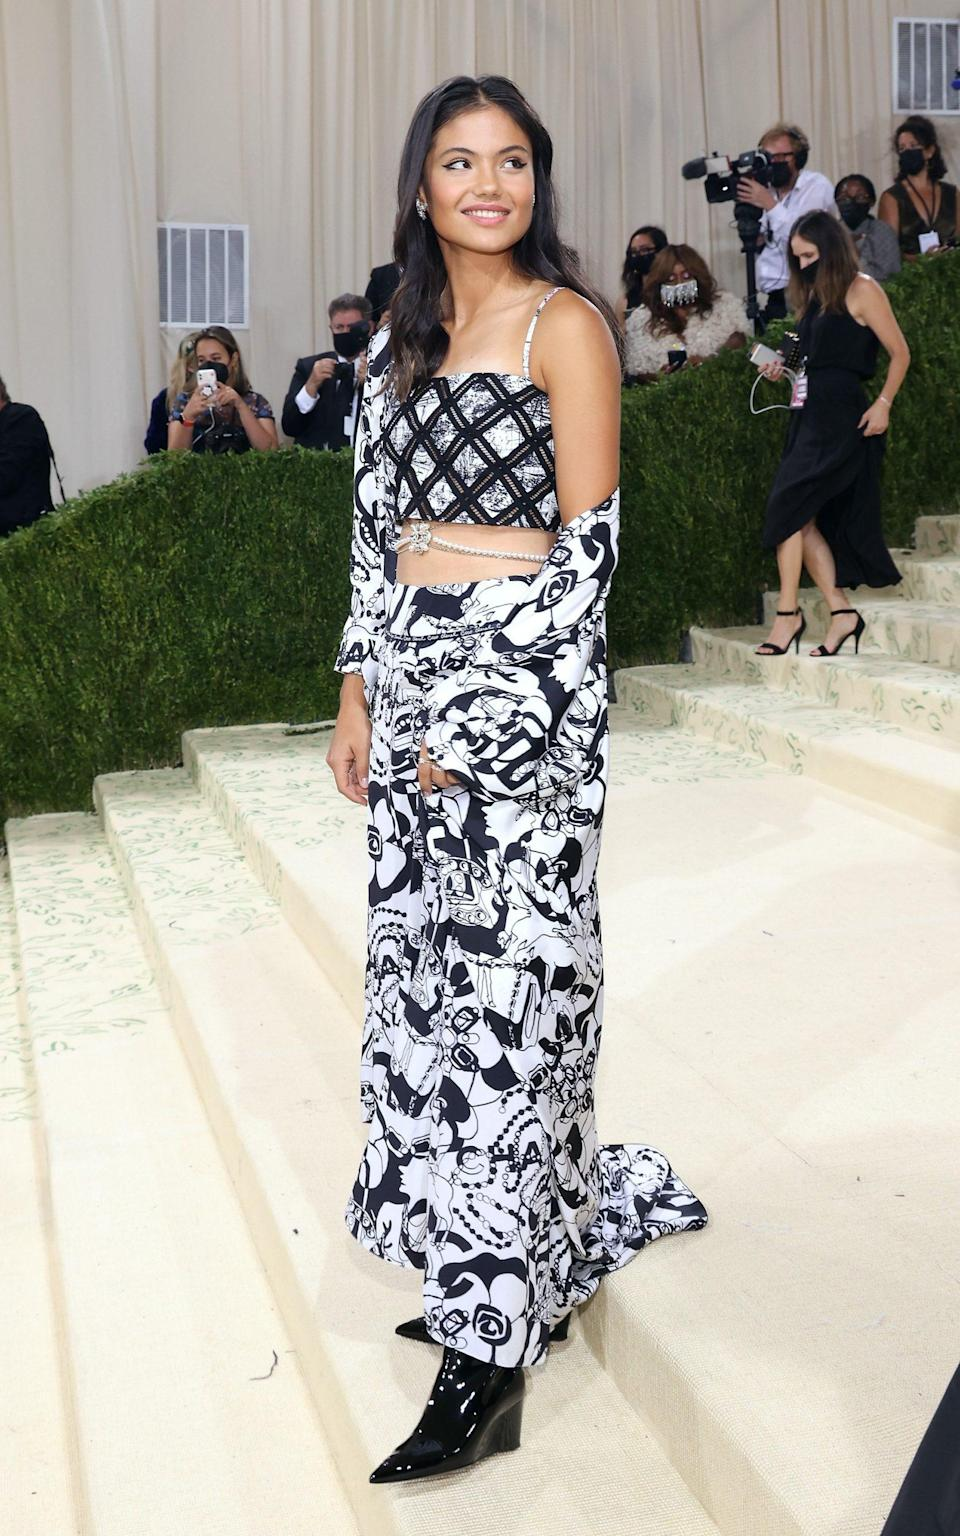 Emma Raducanu wearing Tiffany jewellery and Chanel at the Met Gala in New York - WireImage